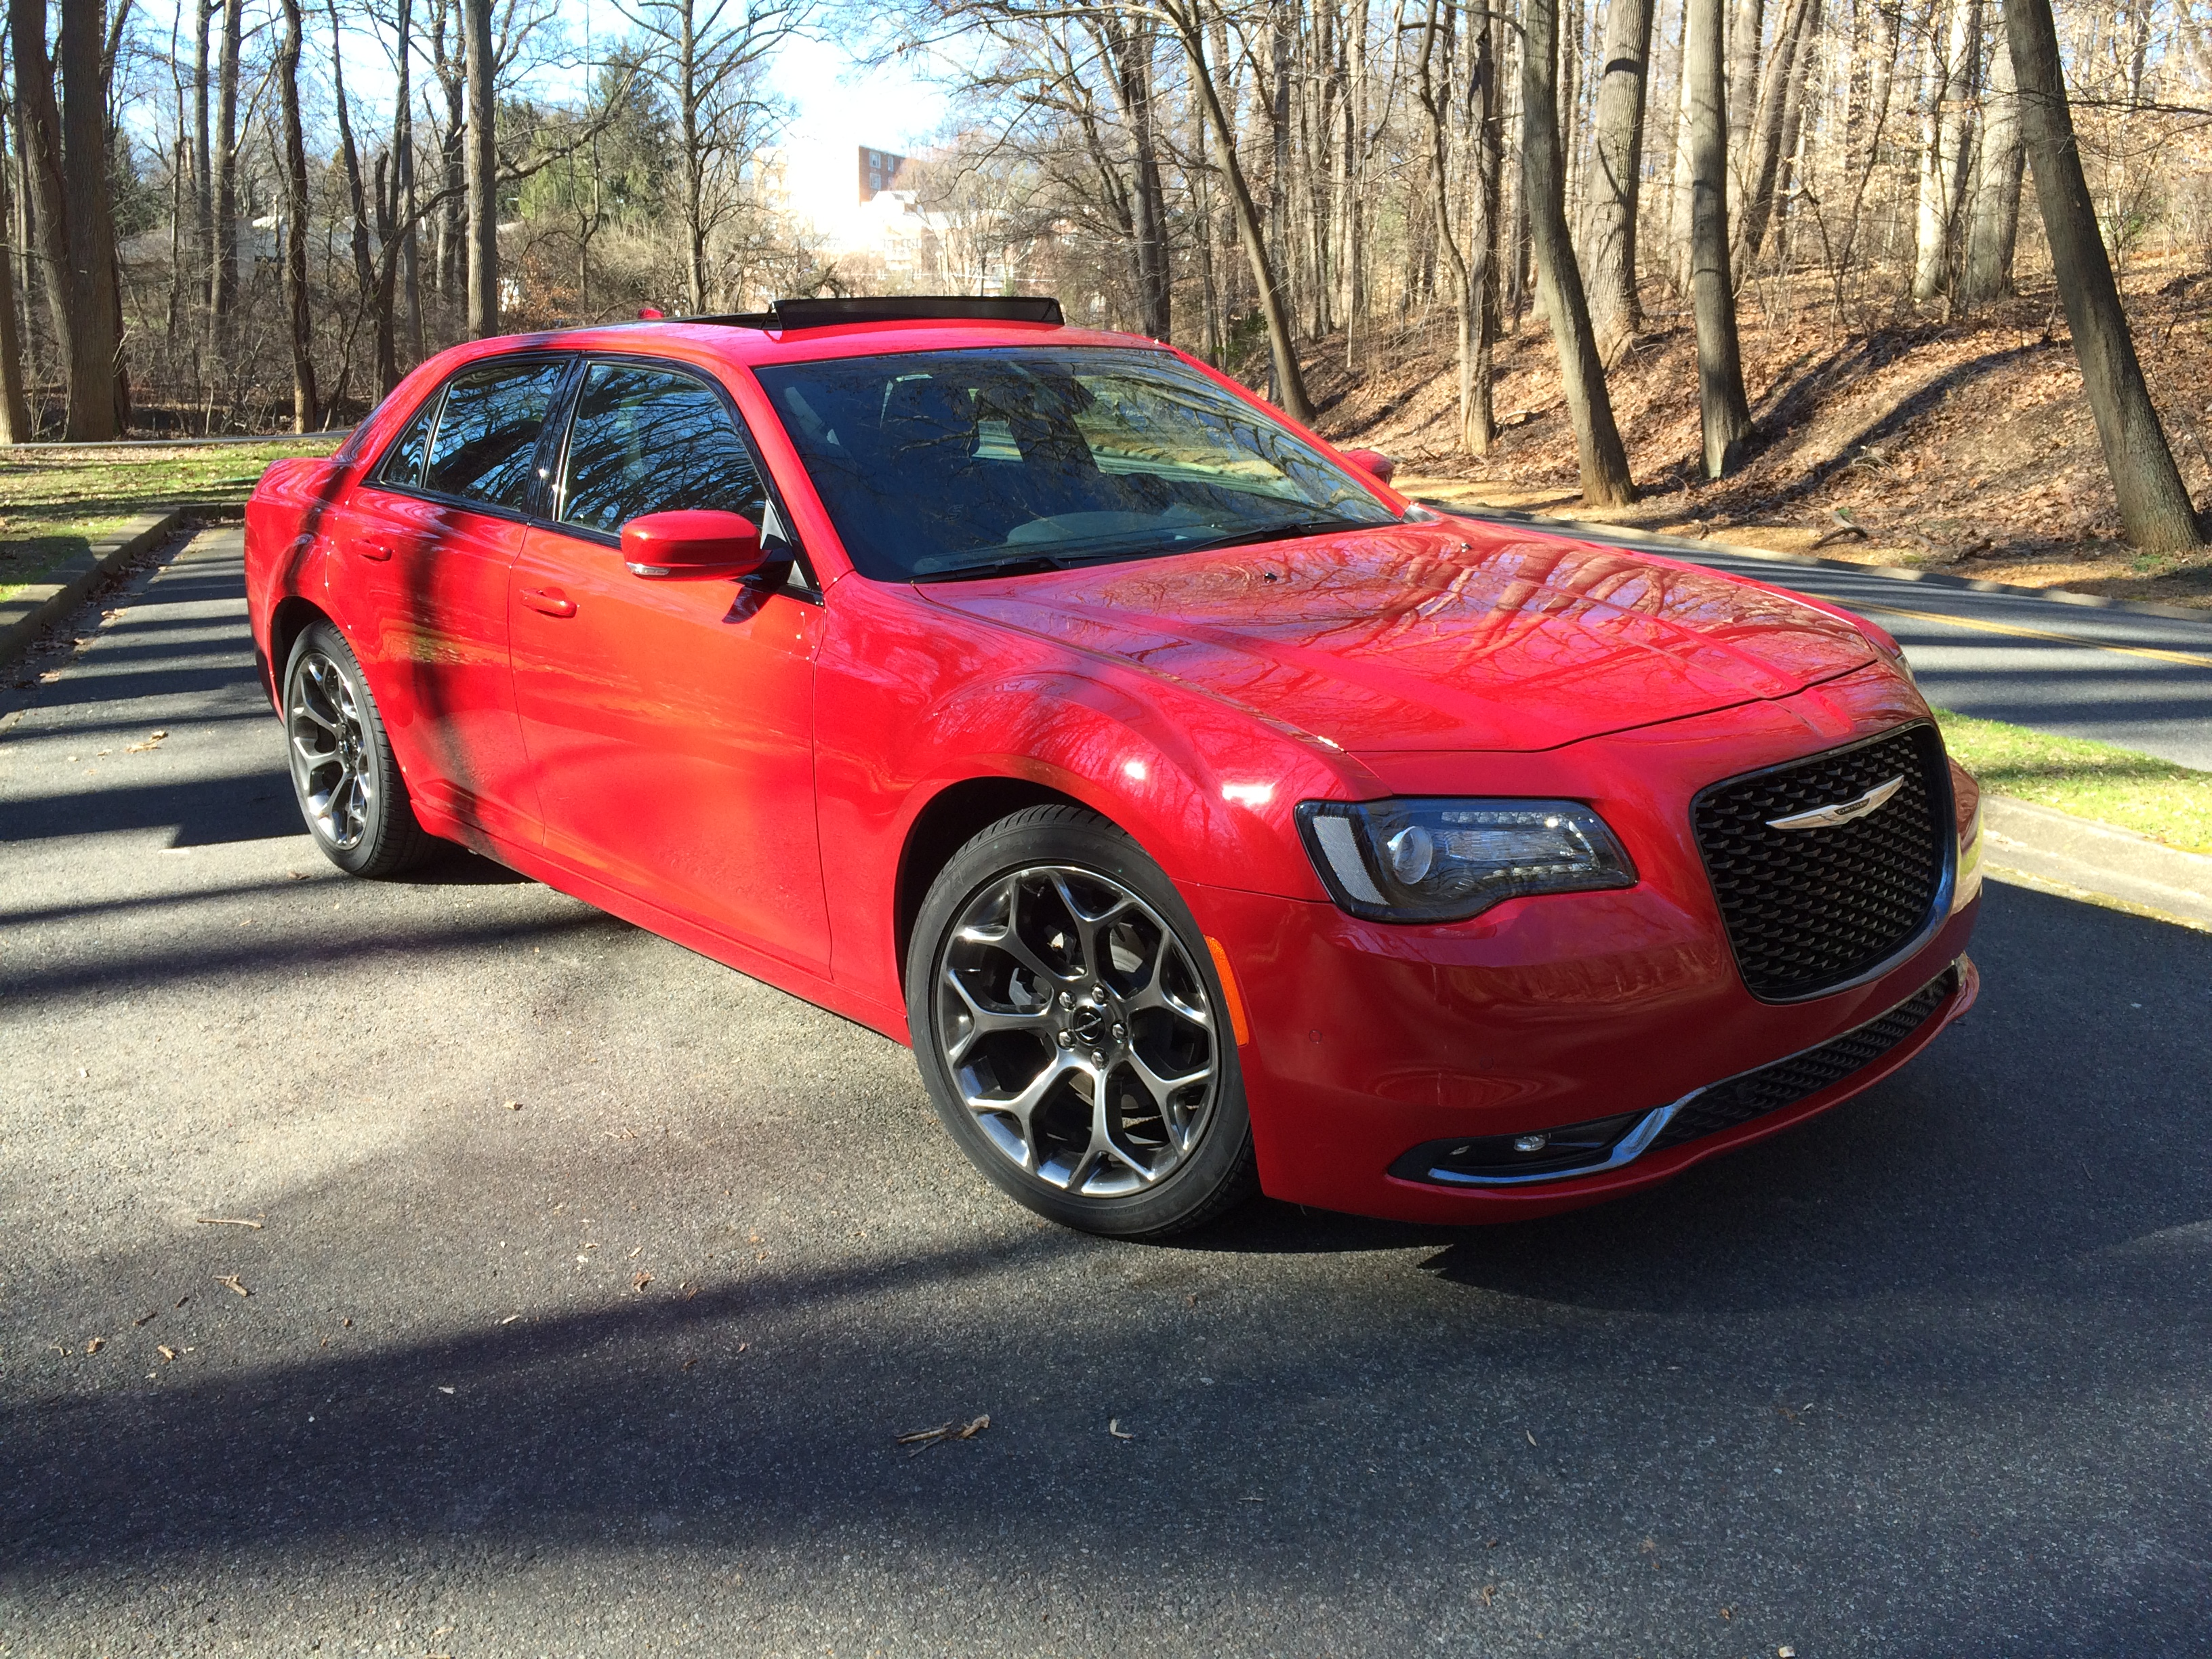 2016 Chrysler 300S: Big sedan with stand-out curb appeal